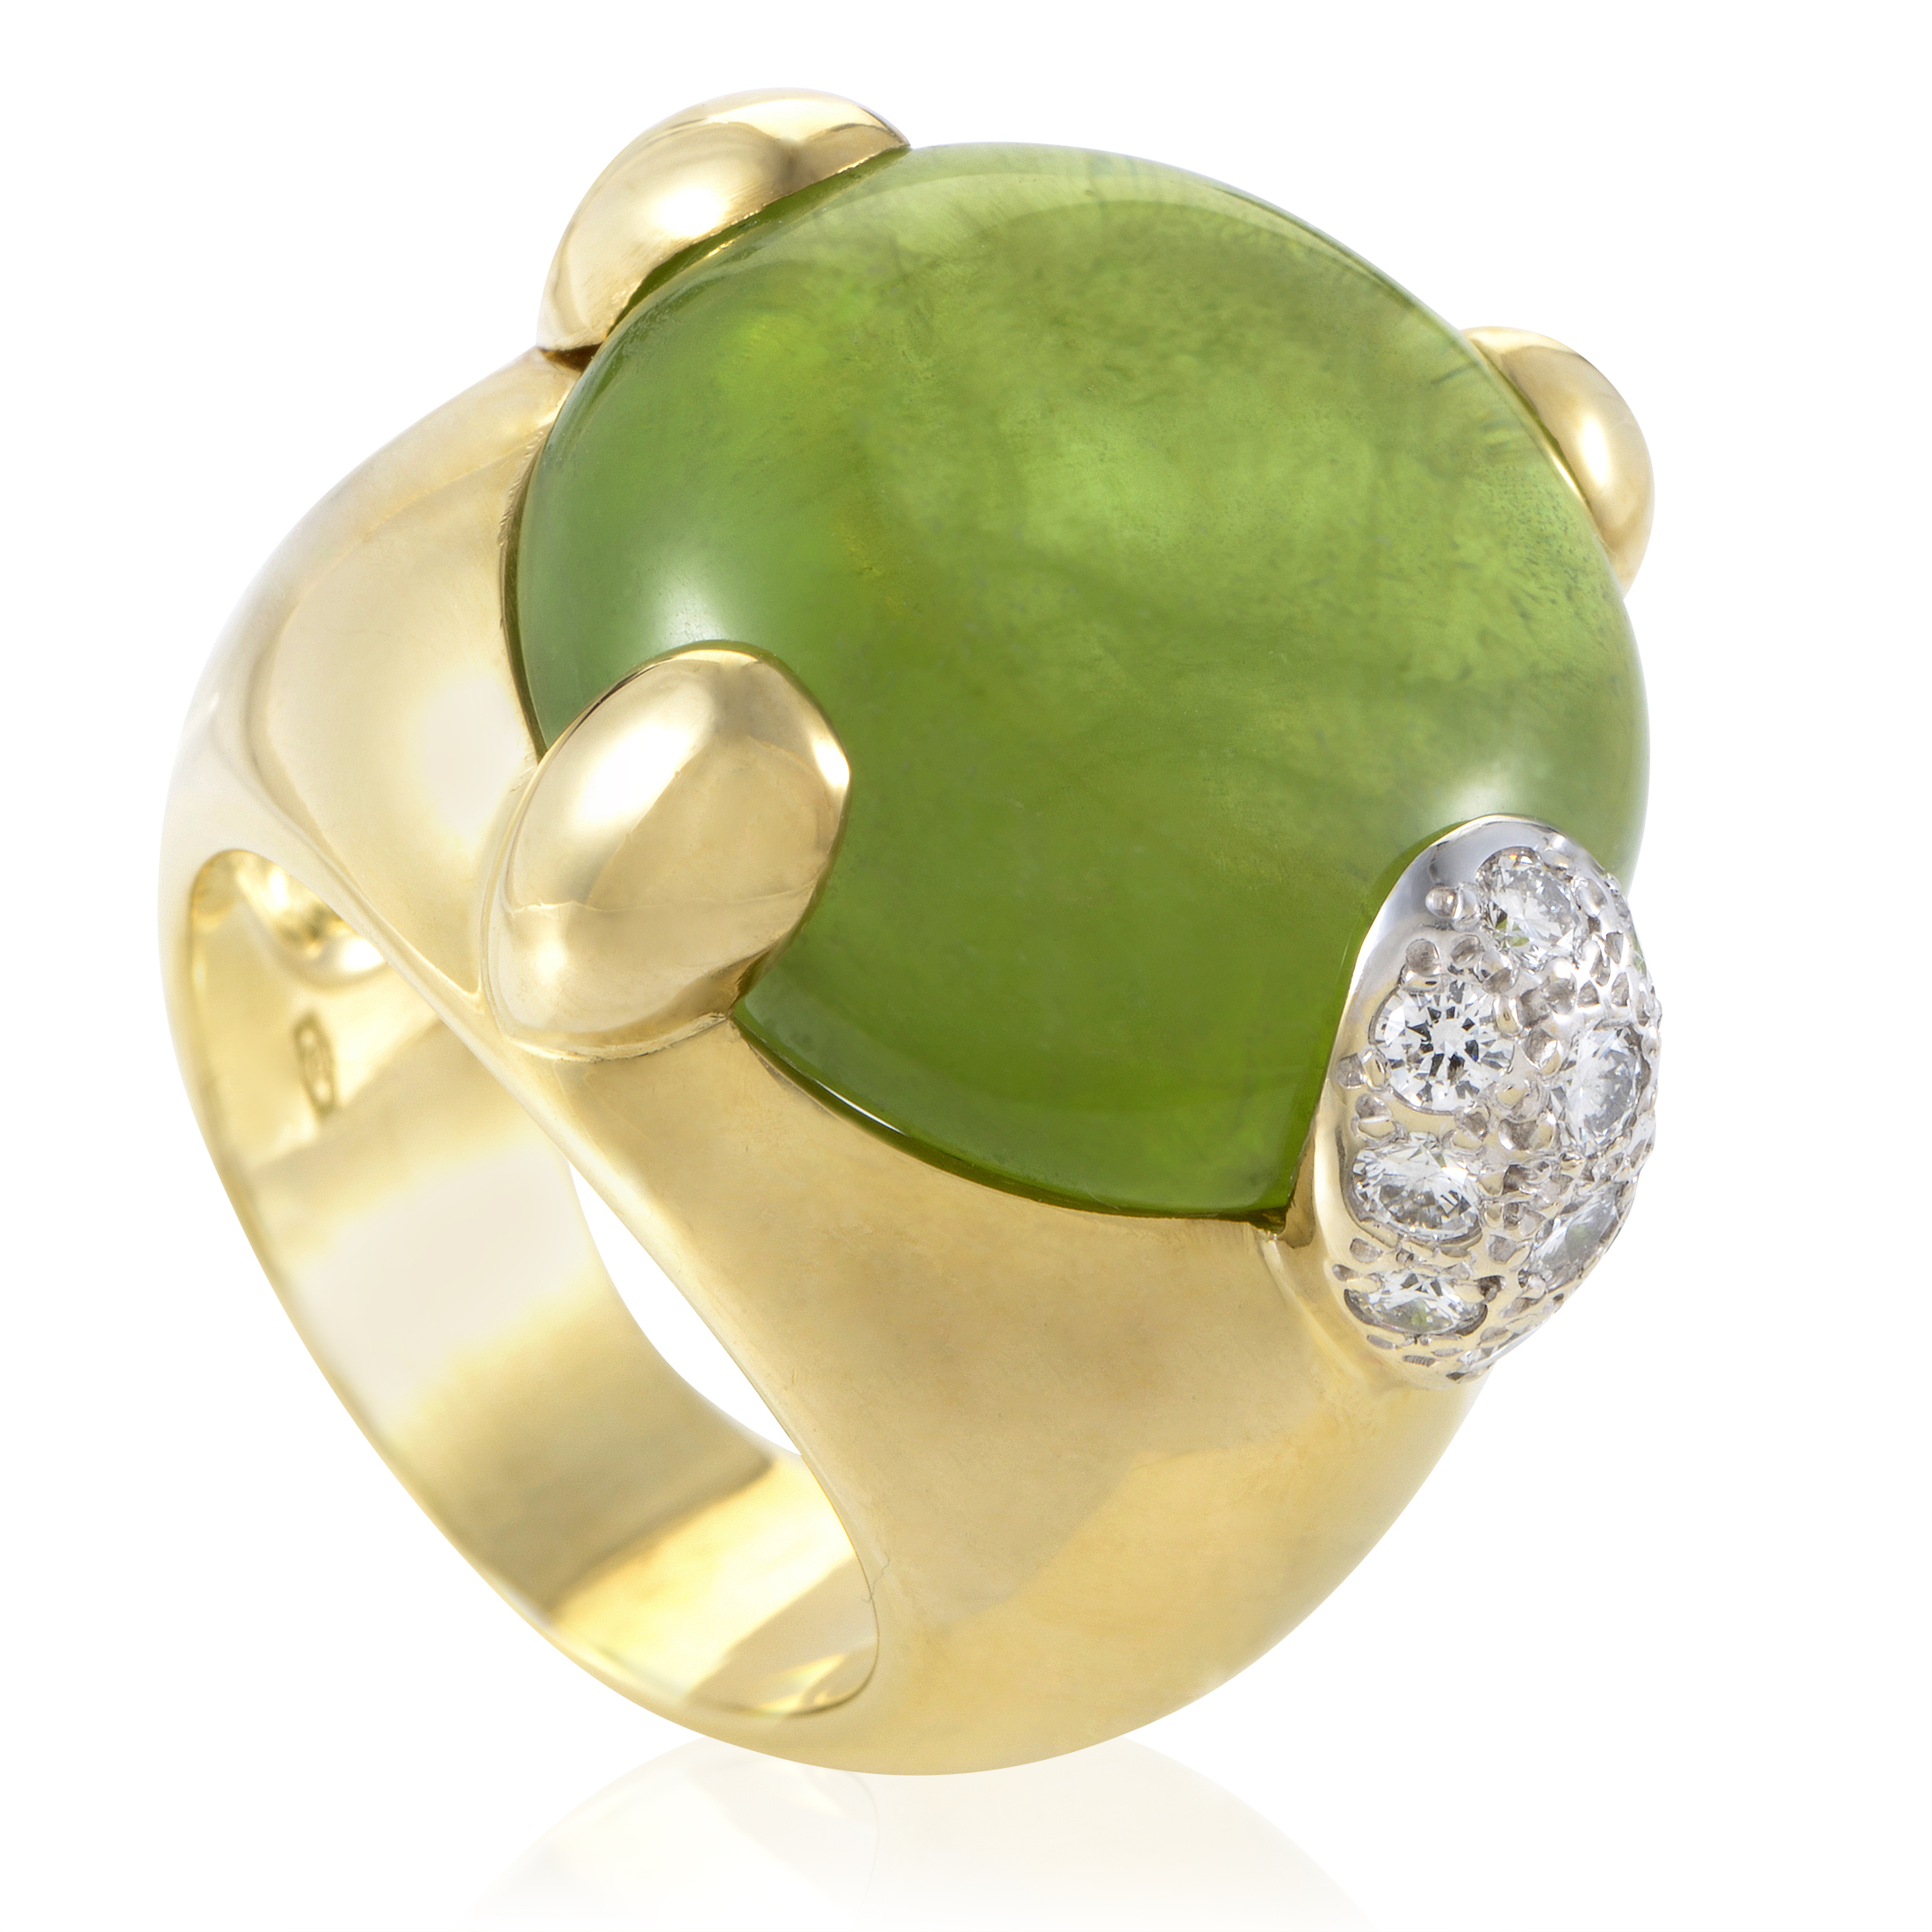 Pomellato Women's 18K Yellow Gold Diamond & Peridot Ring